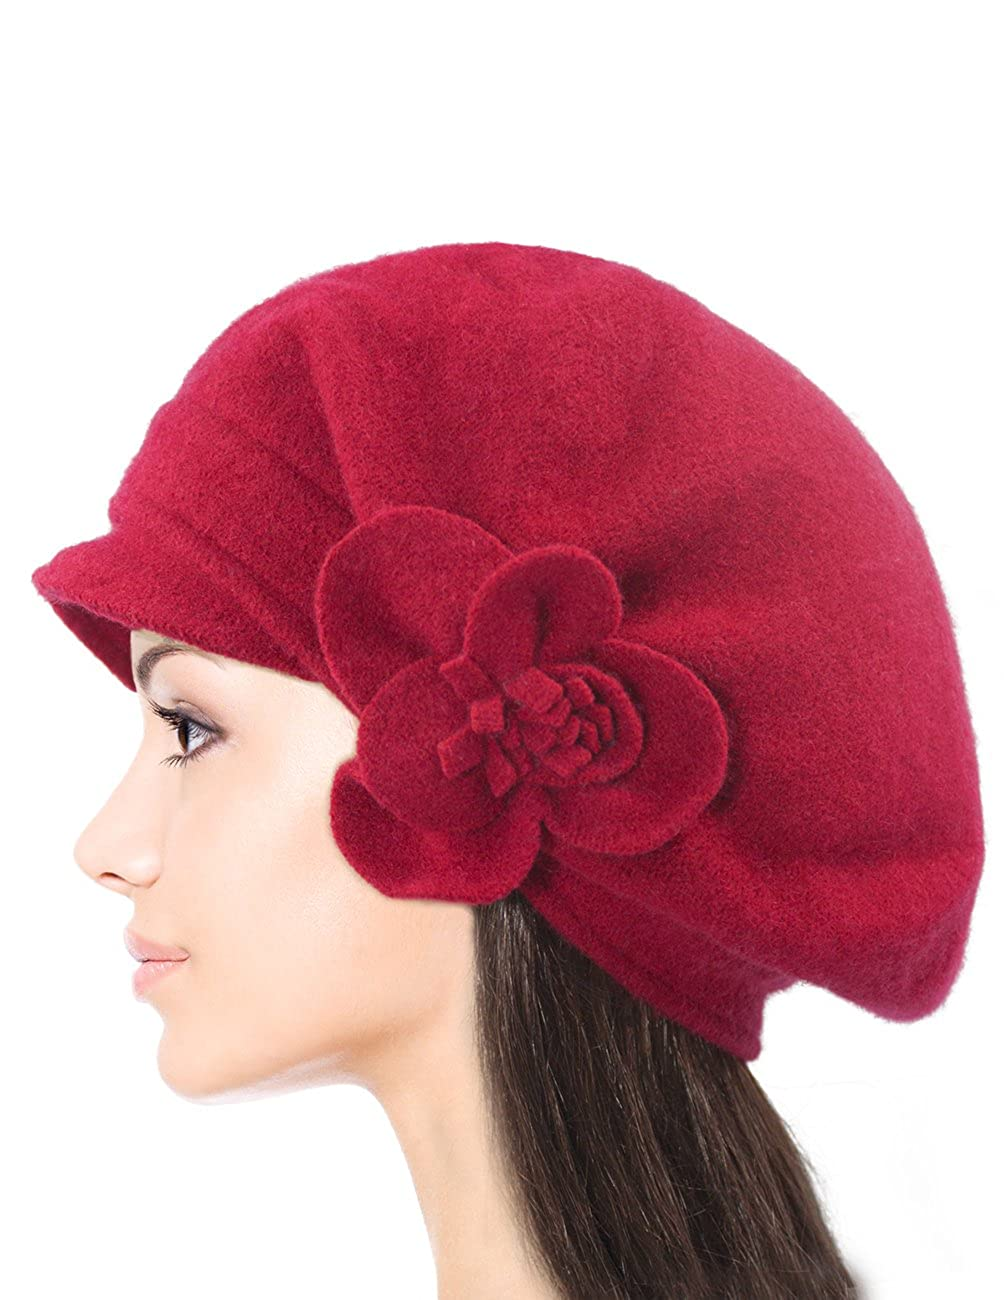 Dahlia Women s Reversible Wool Beret Hat - Flower Accented HT0080WLW-BK  larger image 722639aa30a4